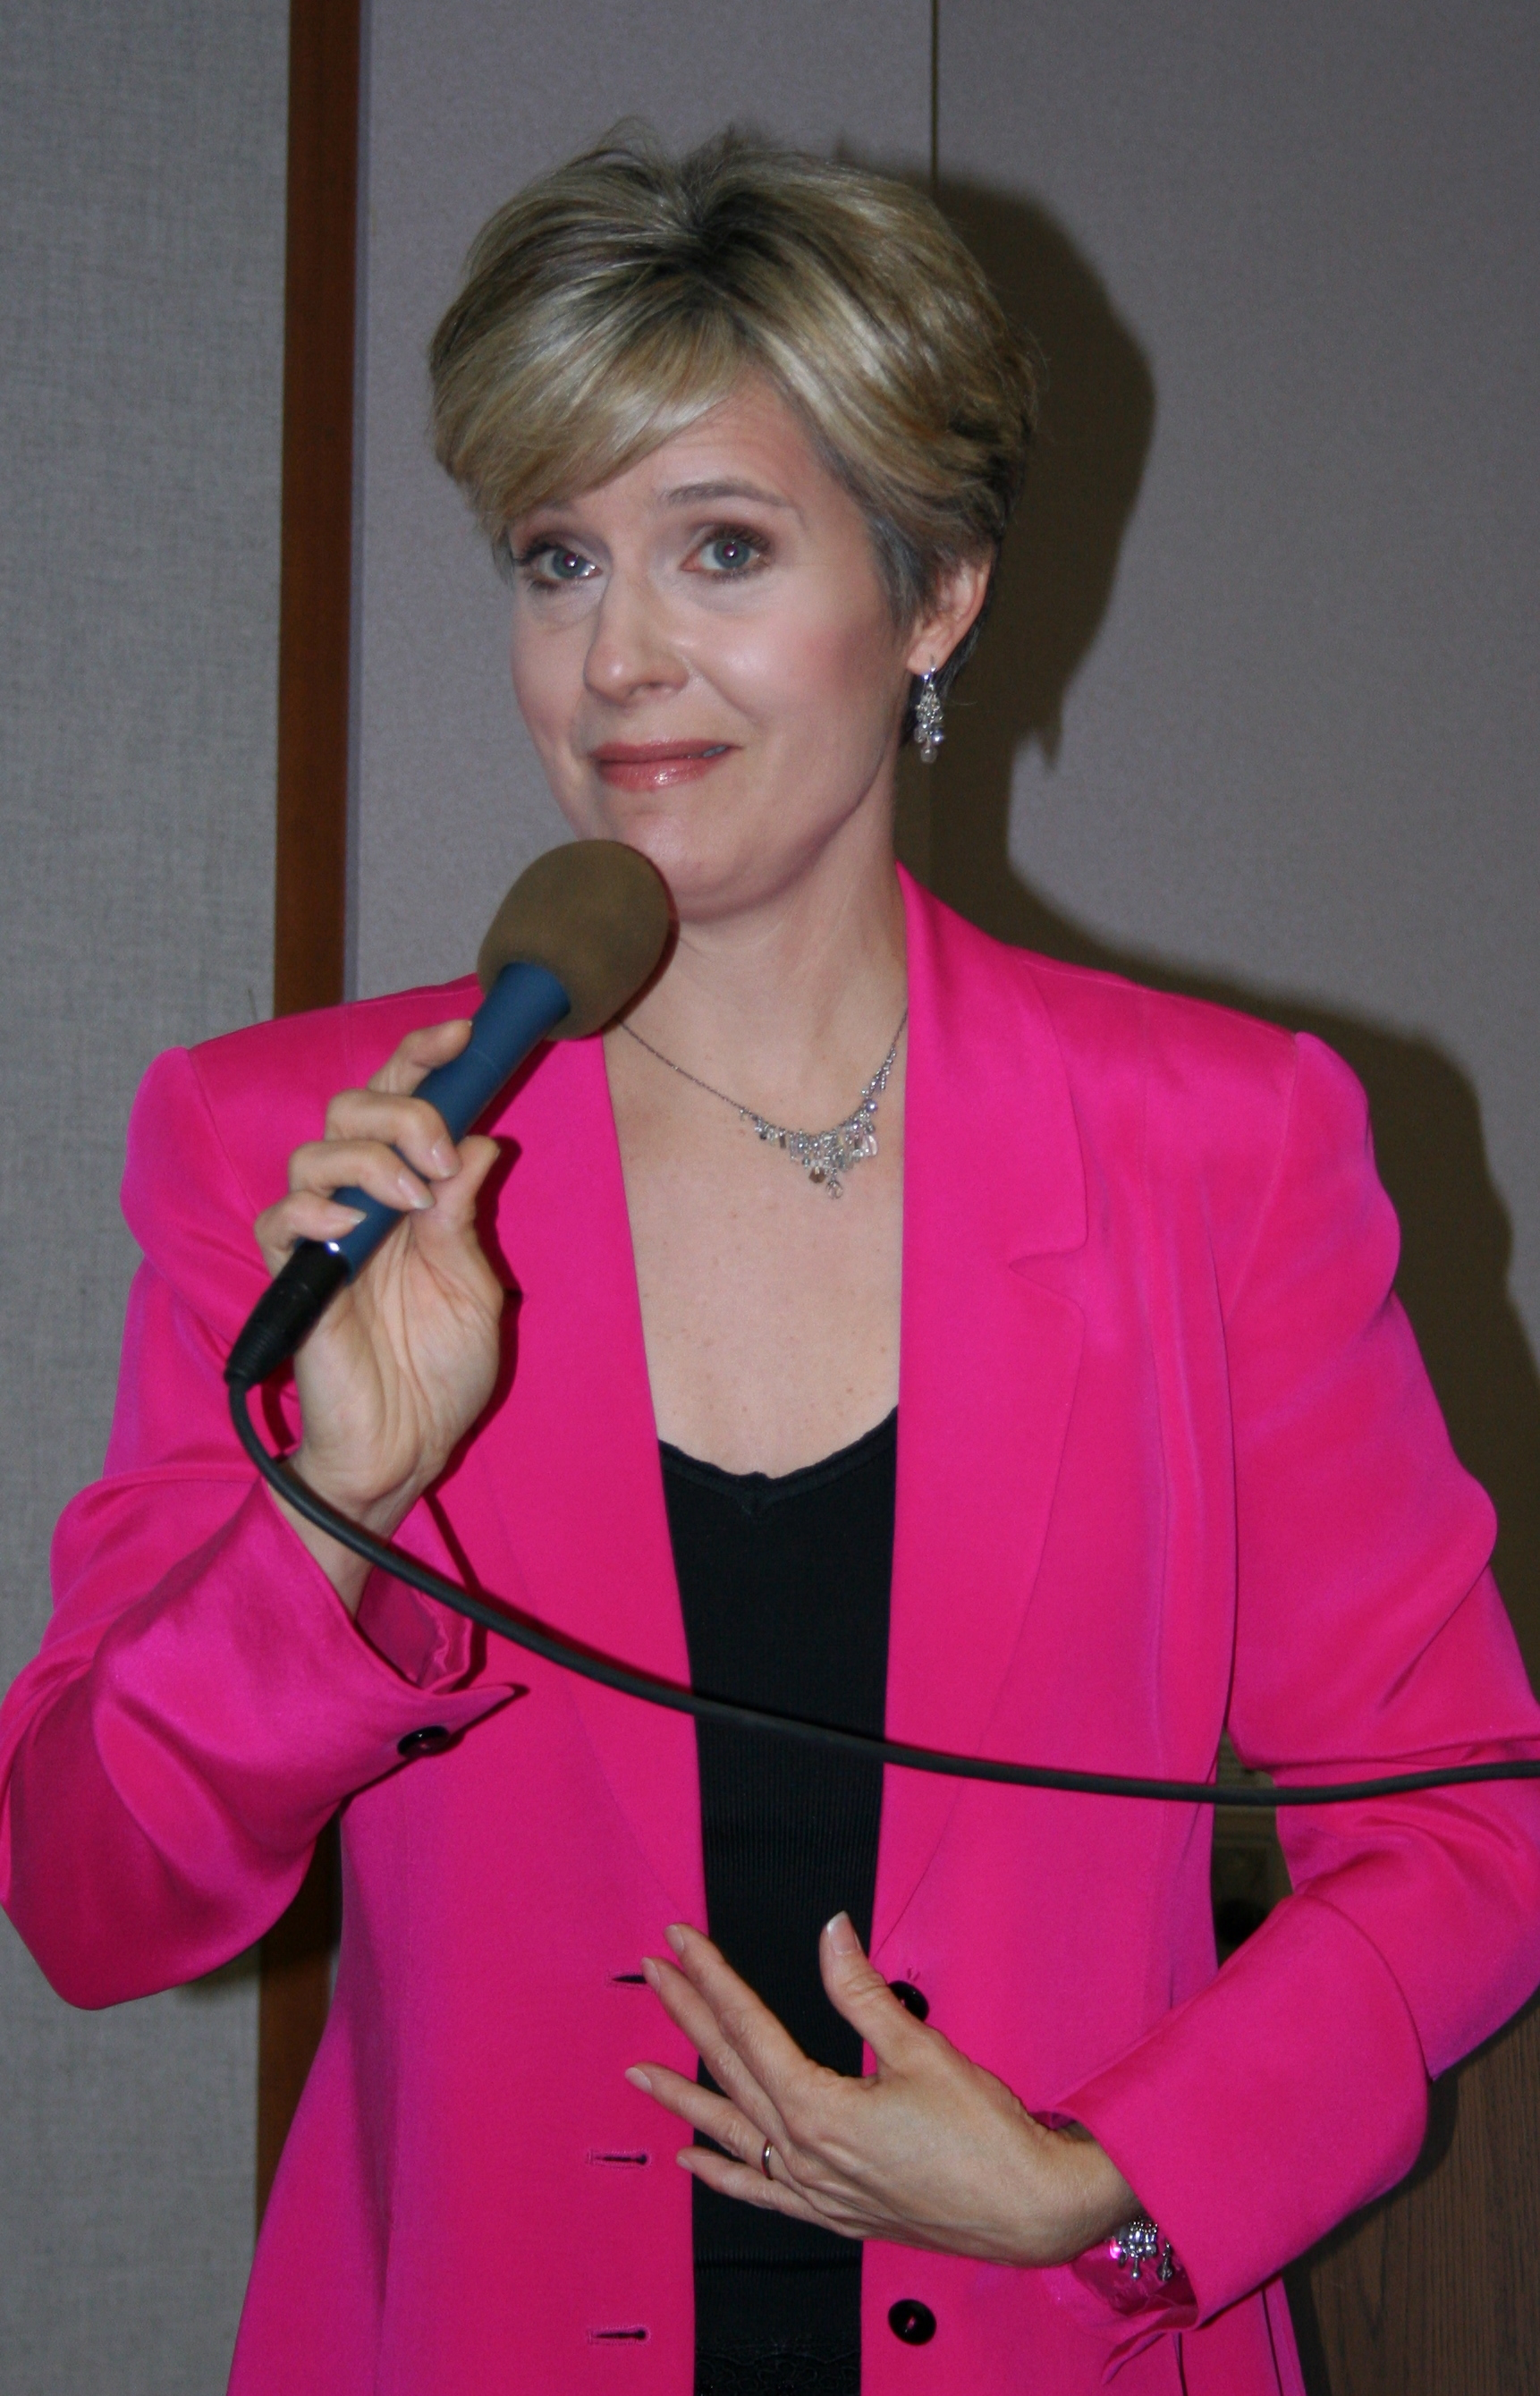 Cathy Wurzer FileCathyWurzerJPG Wikimedia Commons